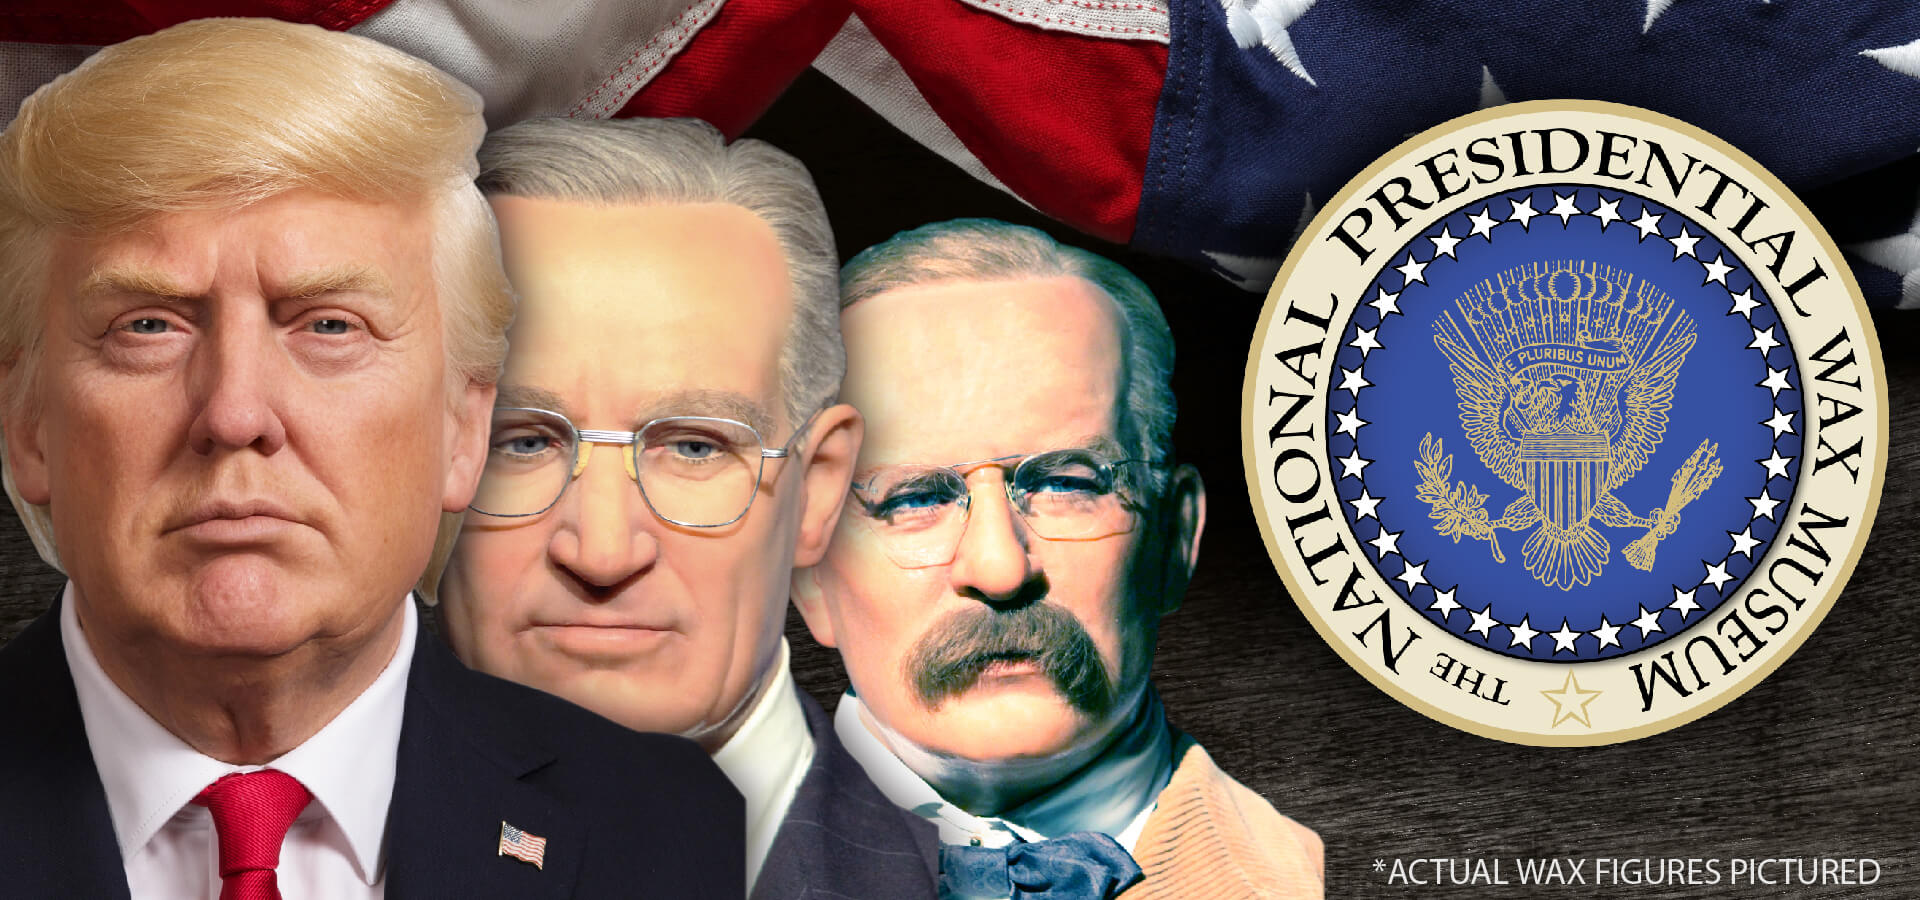 This slide shows the faces of three US Presidents along with the Presidential Seal. The Presidents include, Donald Trump, Calvin Coolidge, and Theodore Roosevelt.